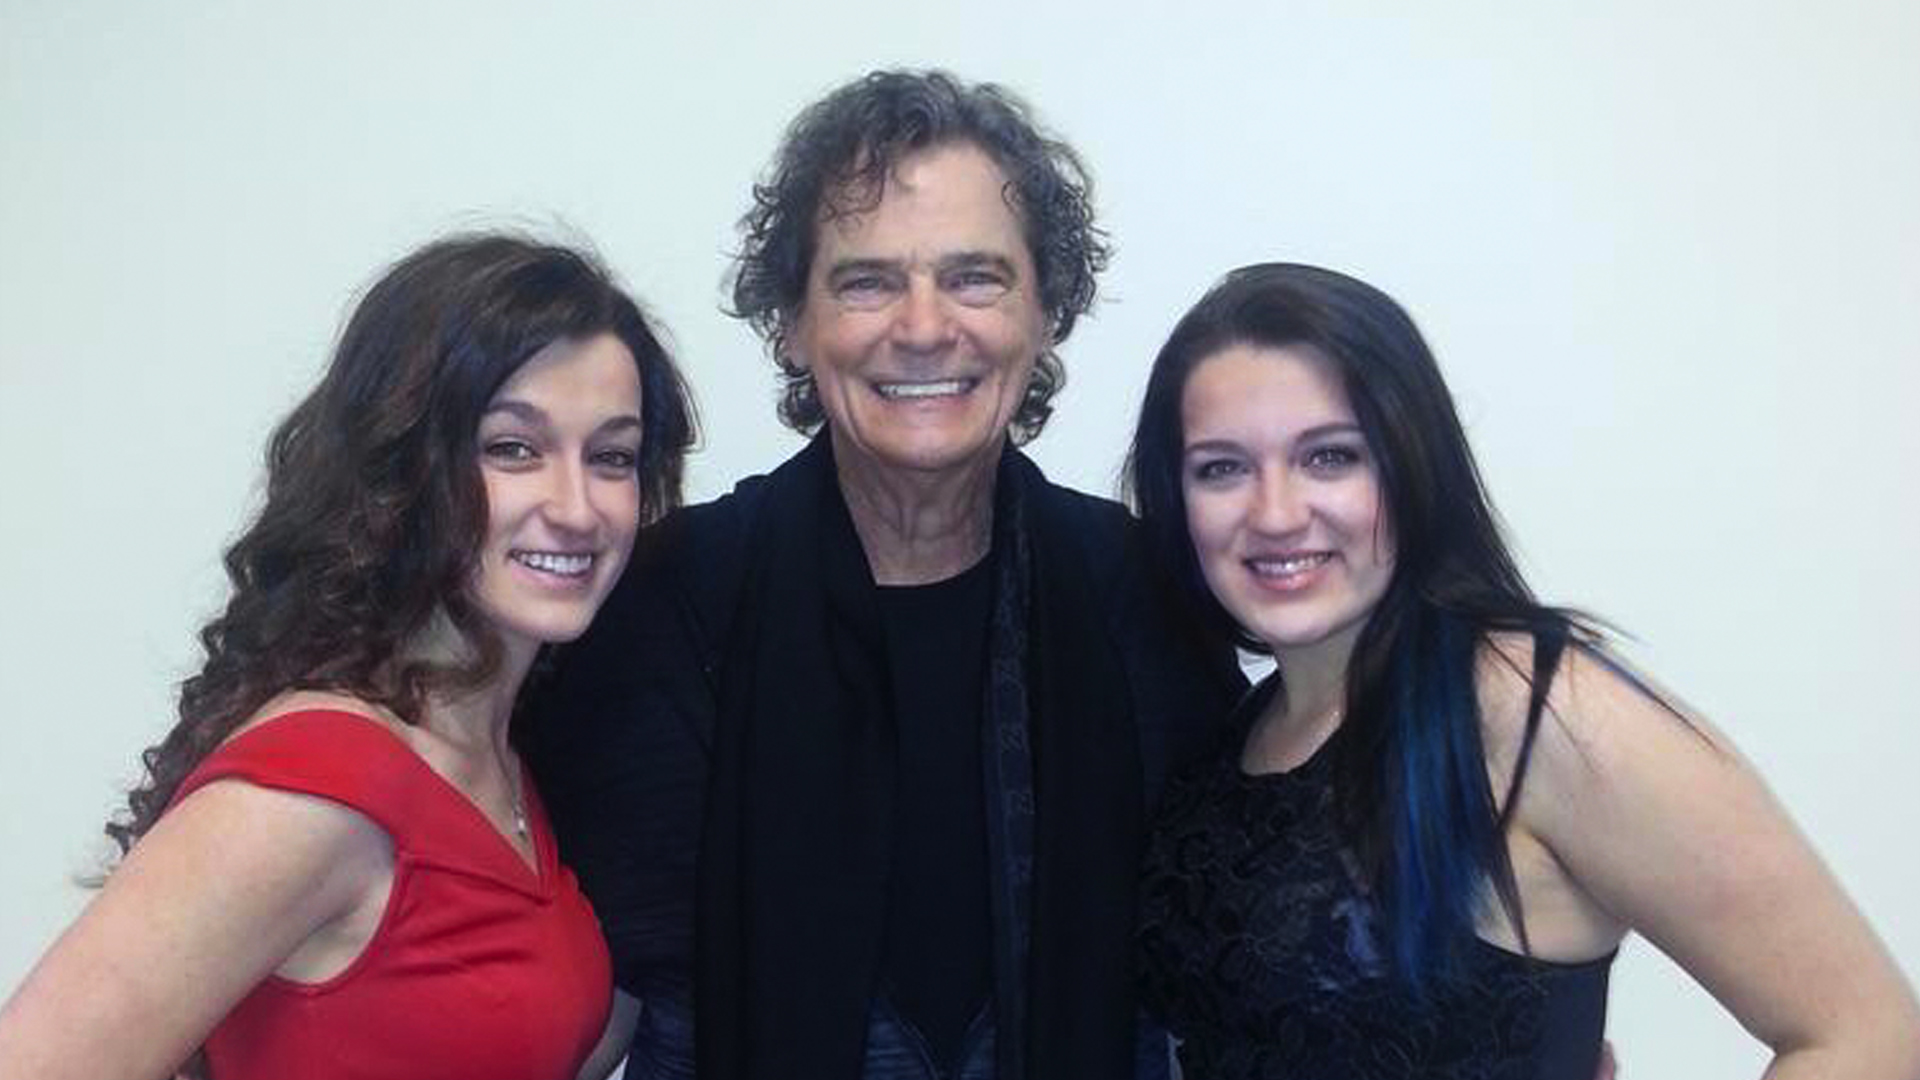 SKY PAC THEATER - Bowling Green KYOpening Act for 5 Time Grammy Winner, BJ Thomas